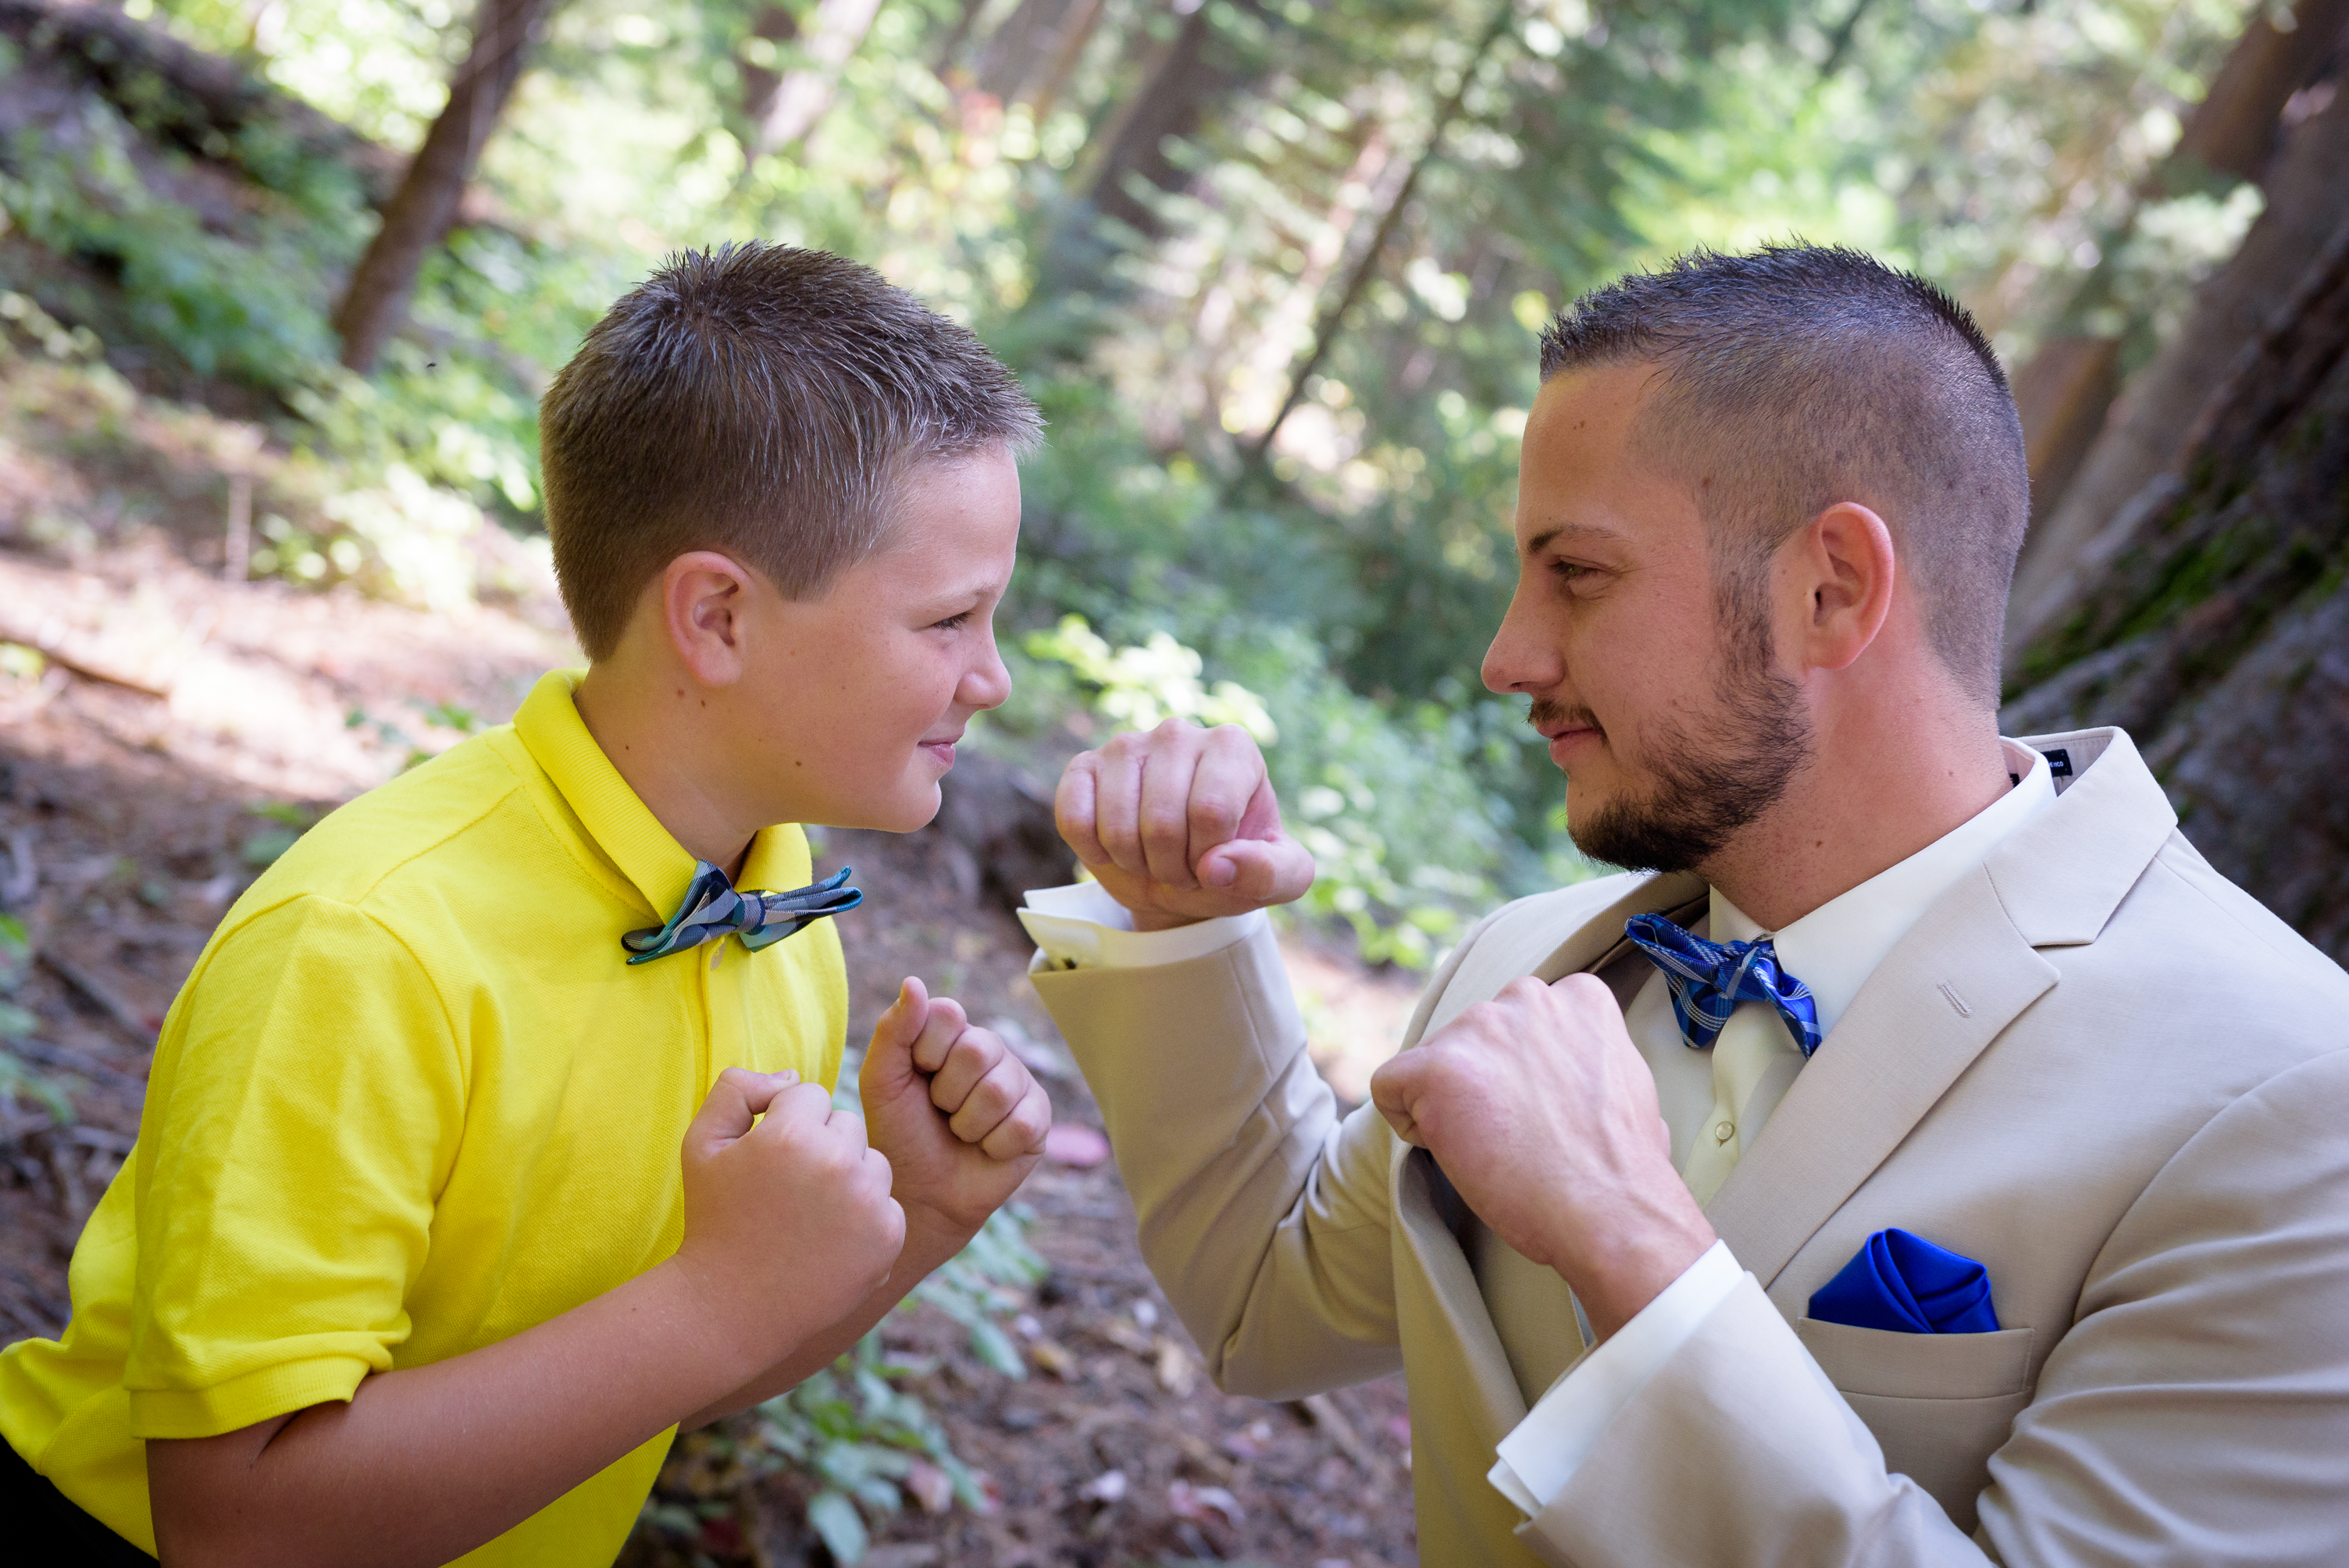 Luke and his ring bearer pretend to fight.